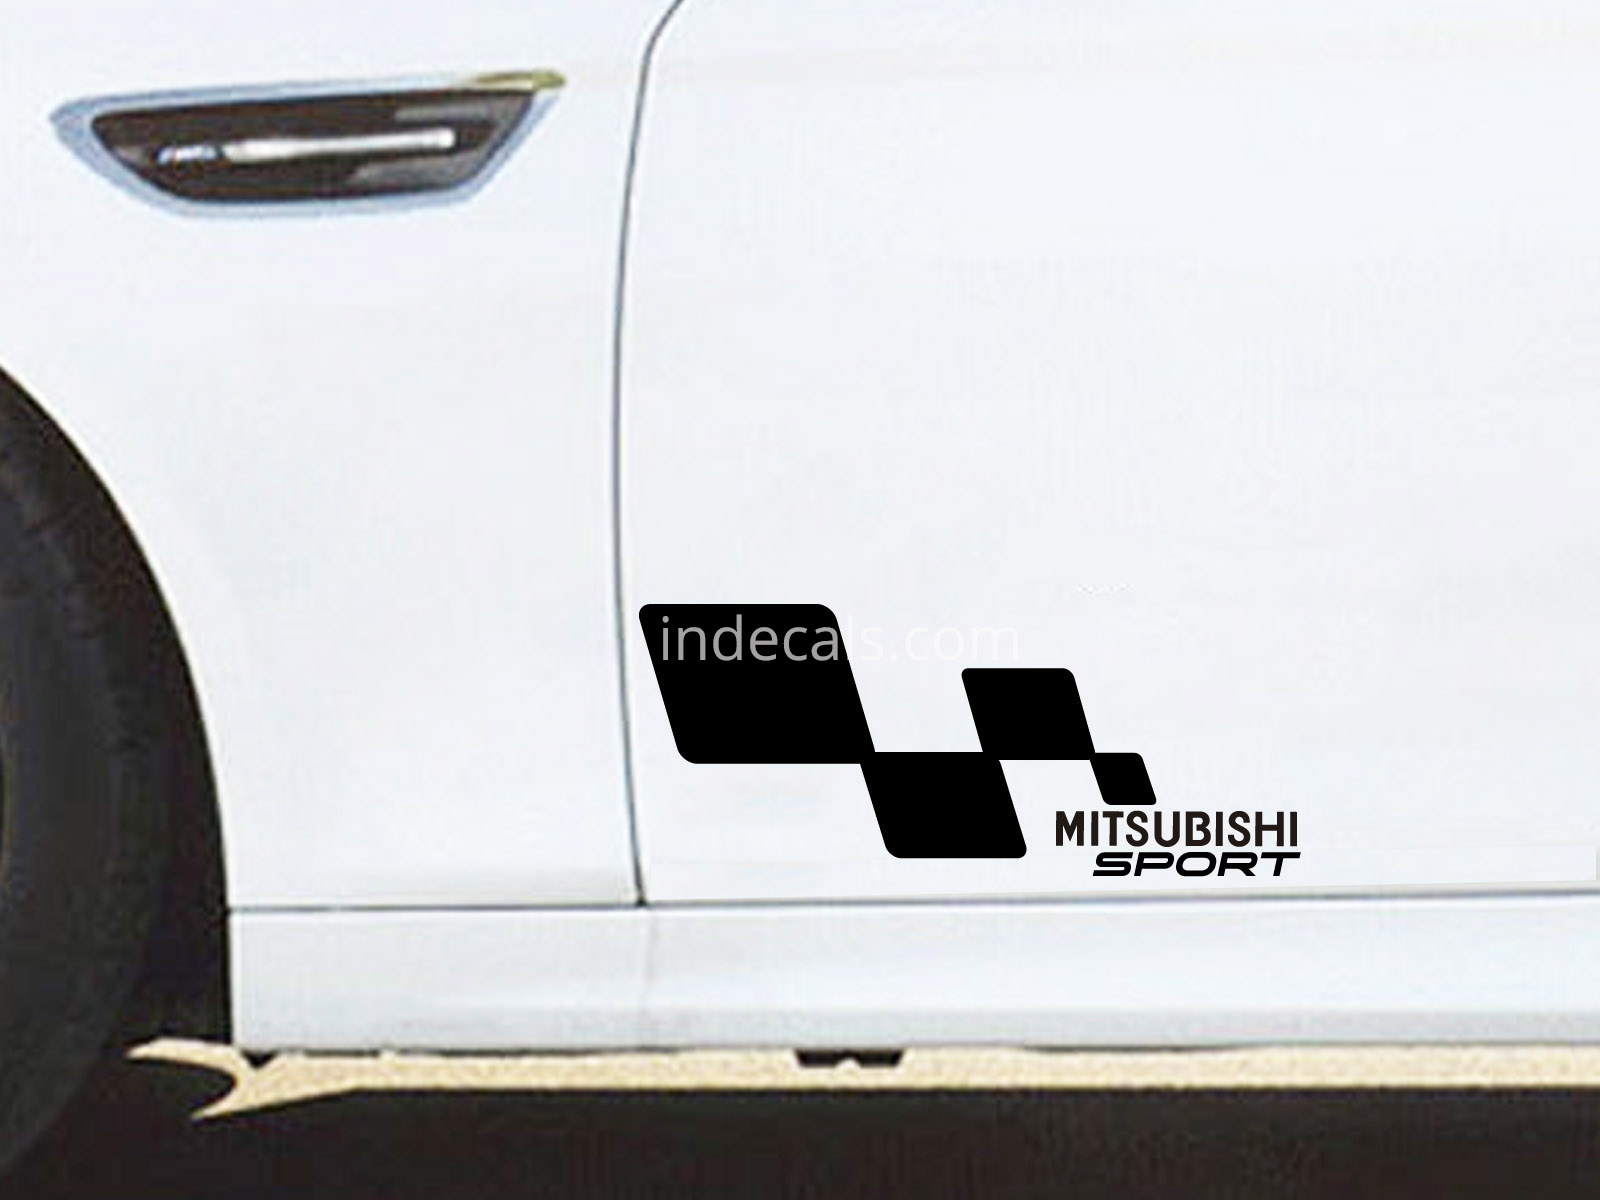 2 X Mitsubishi Racing Flag Stickers Black Indecals Com